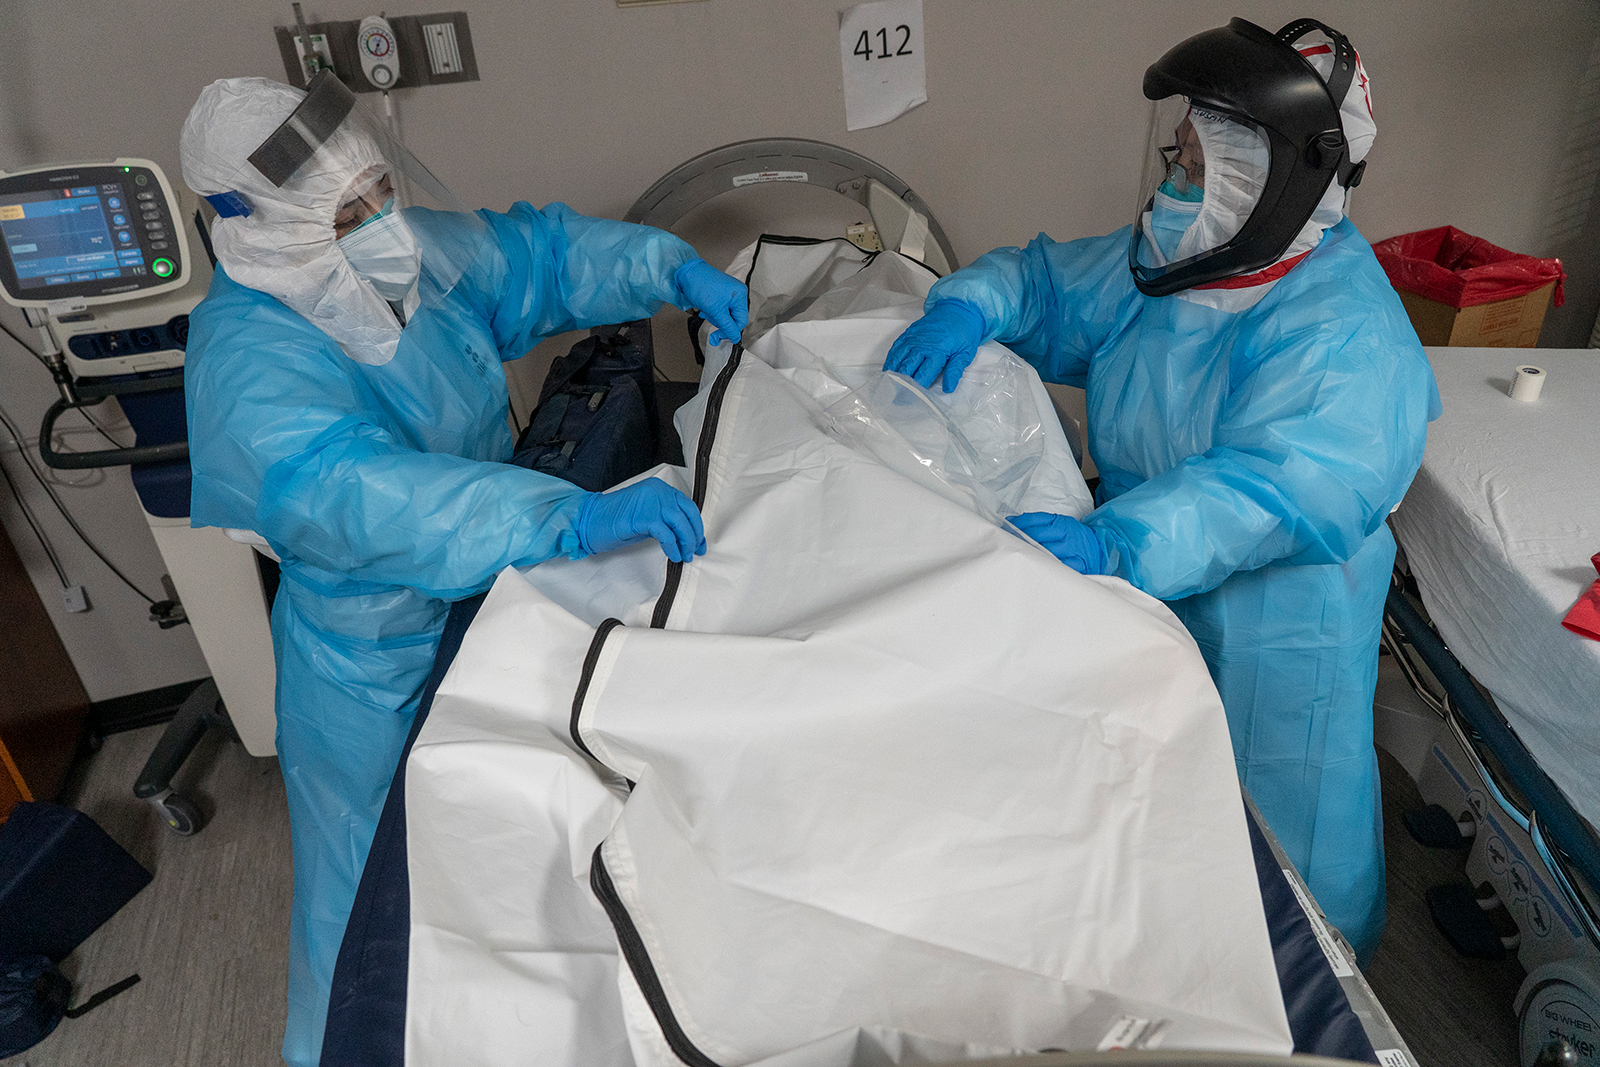 Medical staff members zip up a body bag which contains a deceased patient in the Covid-19 intensive care unit (ICU) at the United Memorial Medical Center in Houston, on December 6.